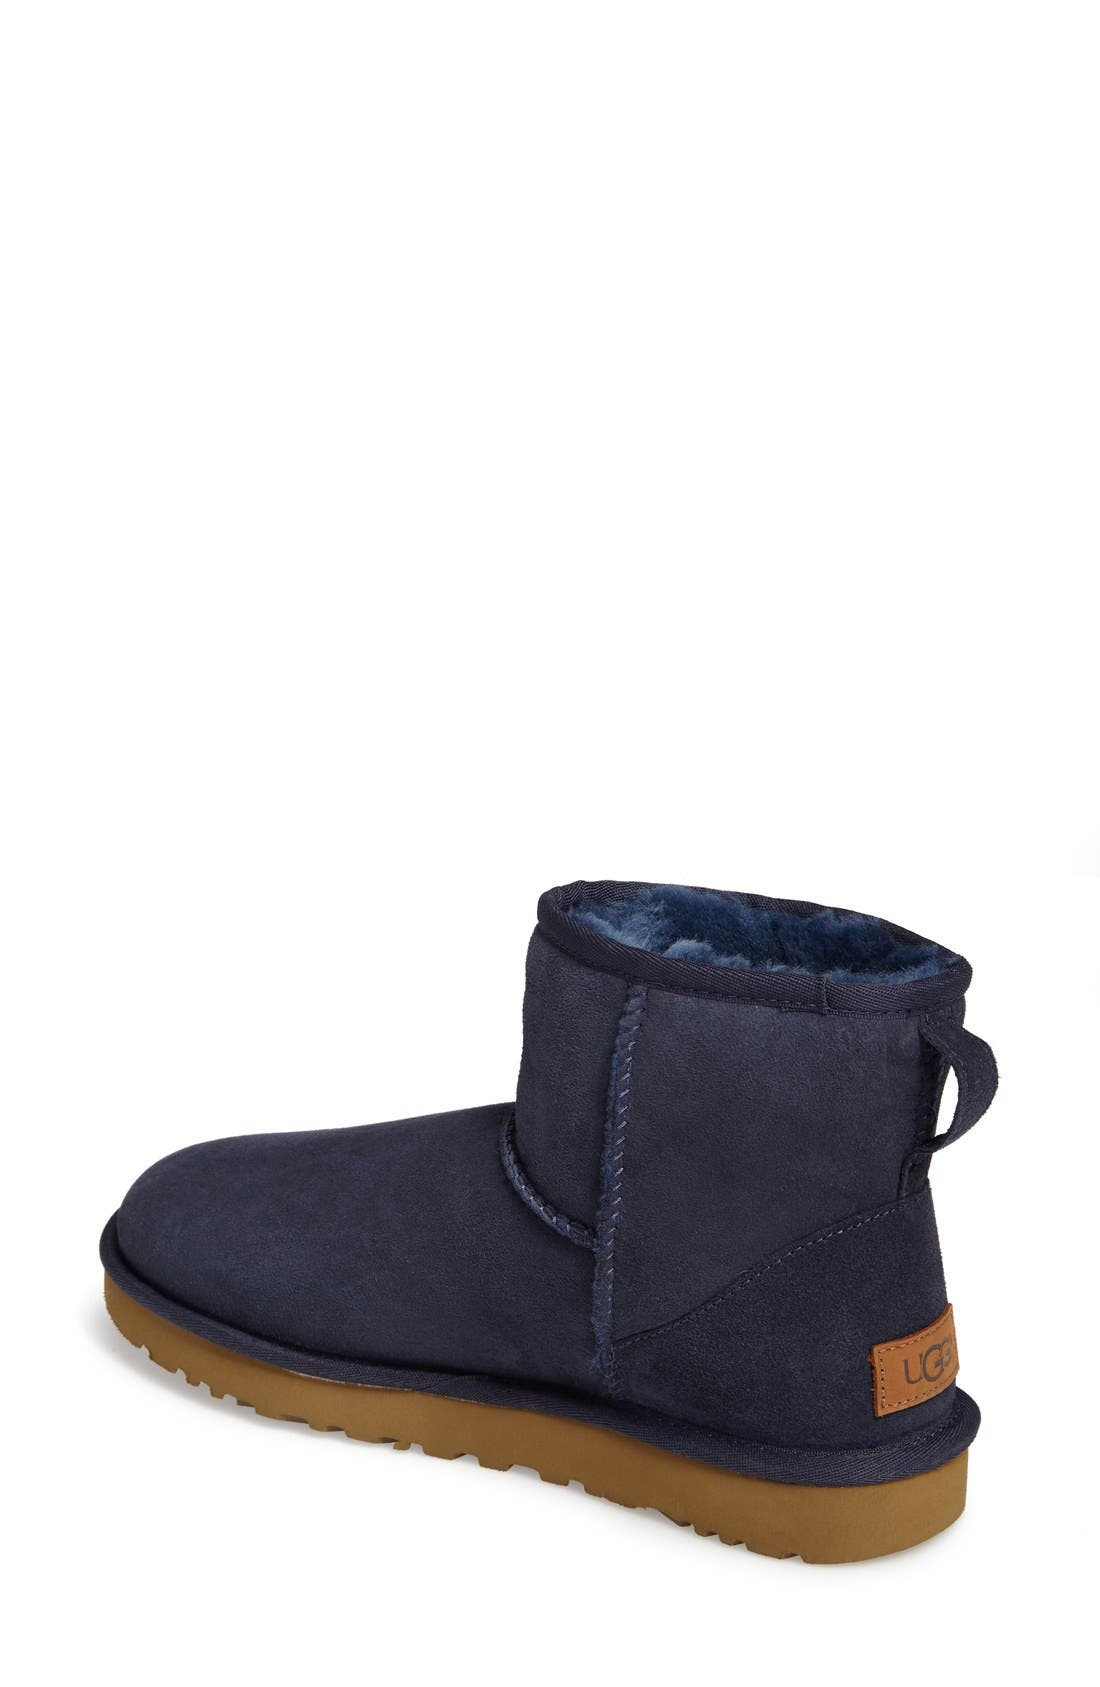 'Classic Mini II' Genuine Shearling Lined Boot,                             Alternate thumbnail 2, color,                             Navy Suede